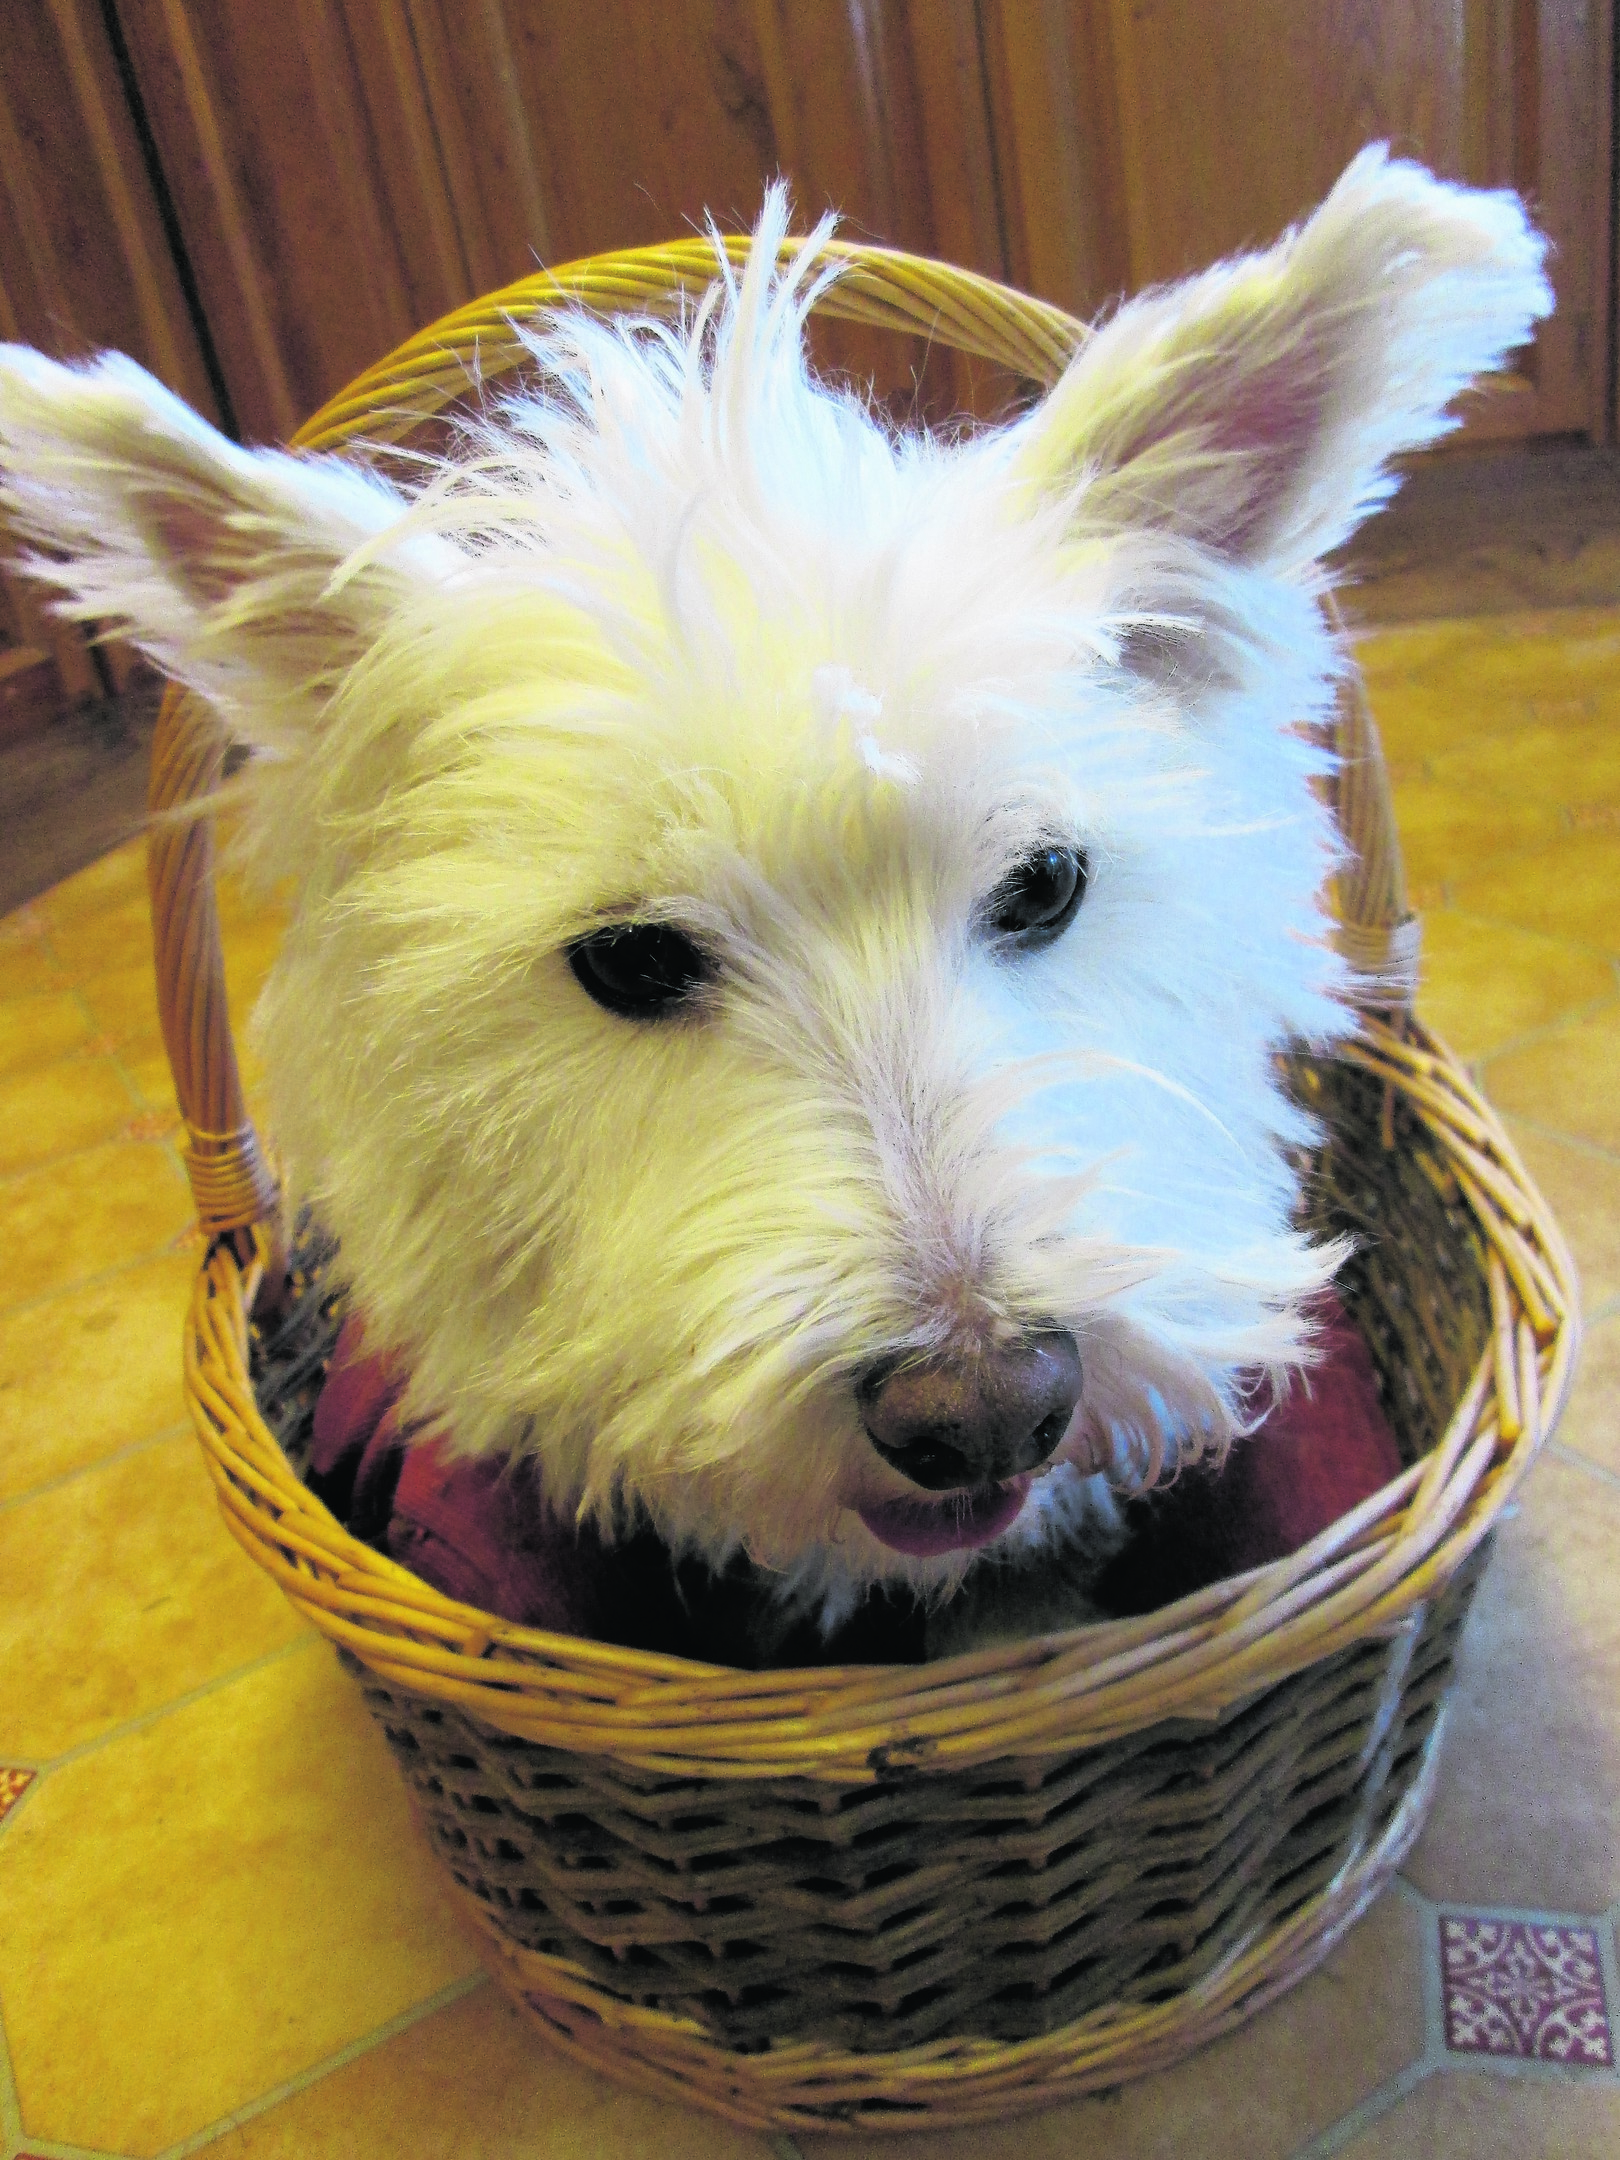 Poppy lives with Fiona Mclean in Brora